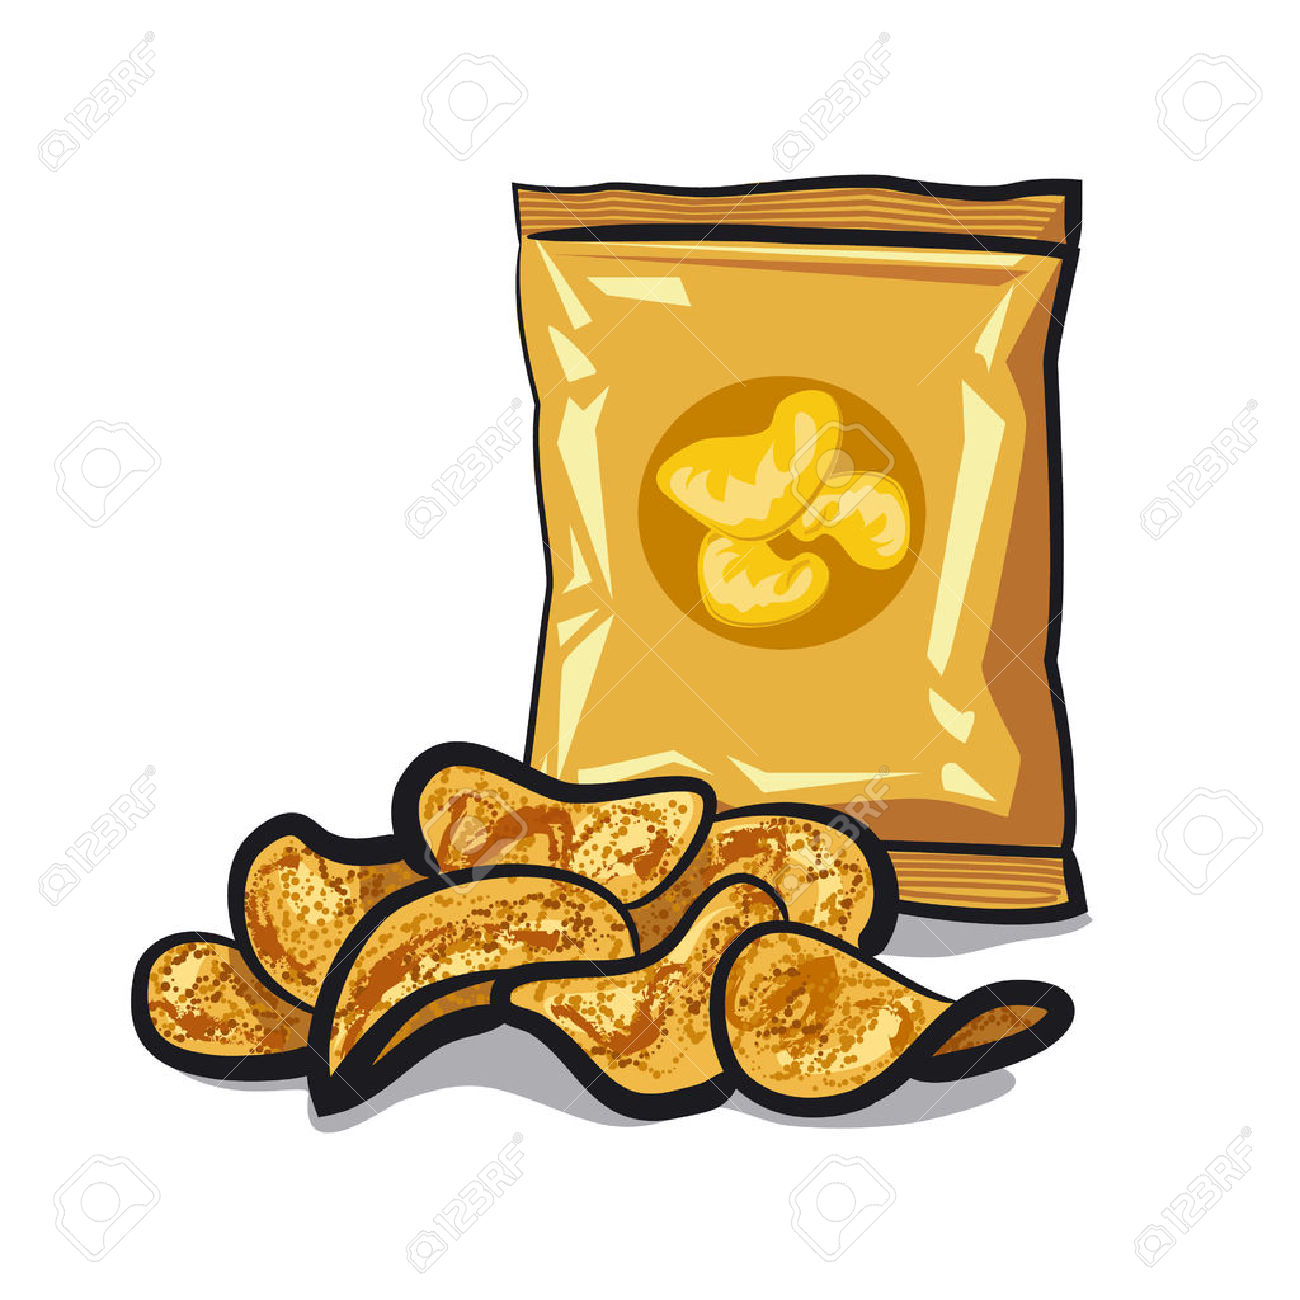 Chip clipart clip black and white library Potato Chip Clipart   Free download best Potato Chip Clipart on ... clip black and white library